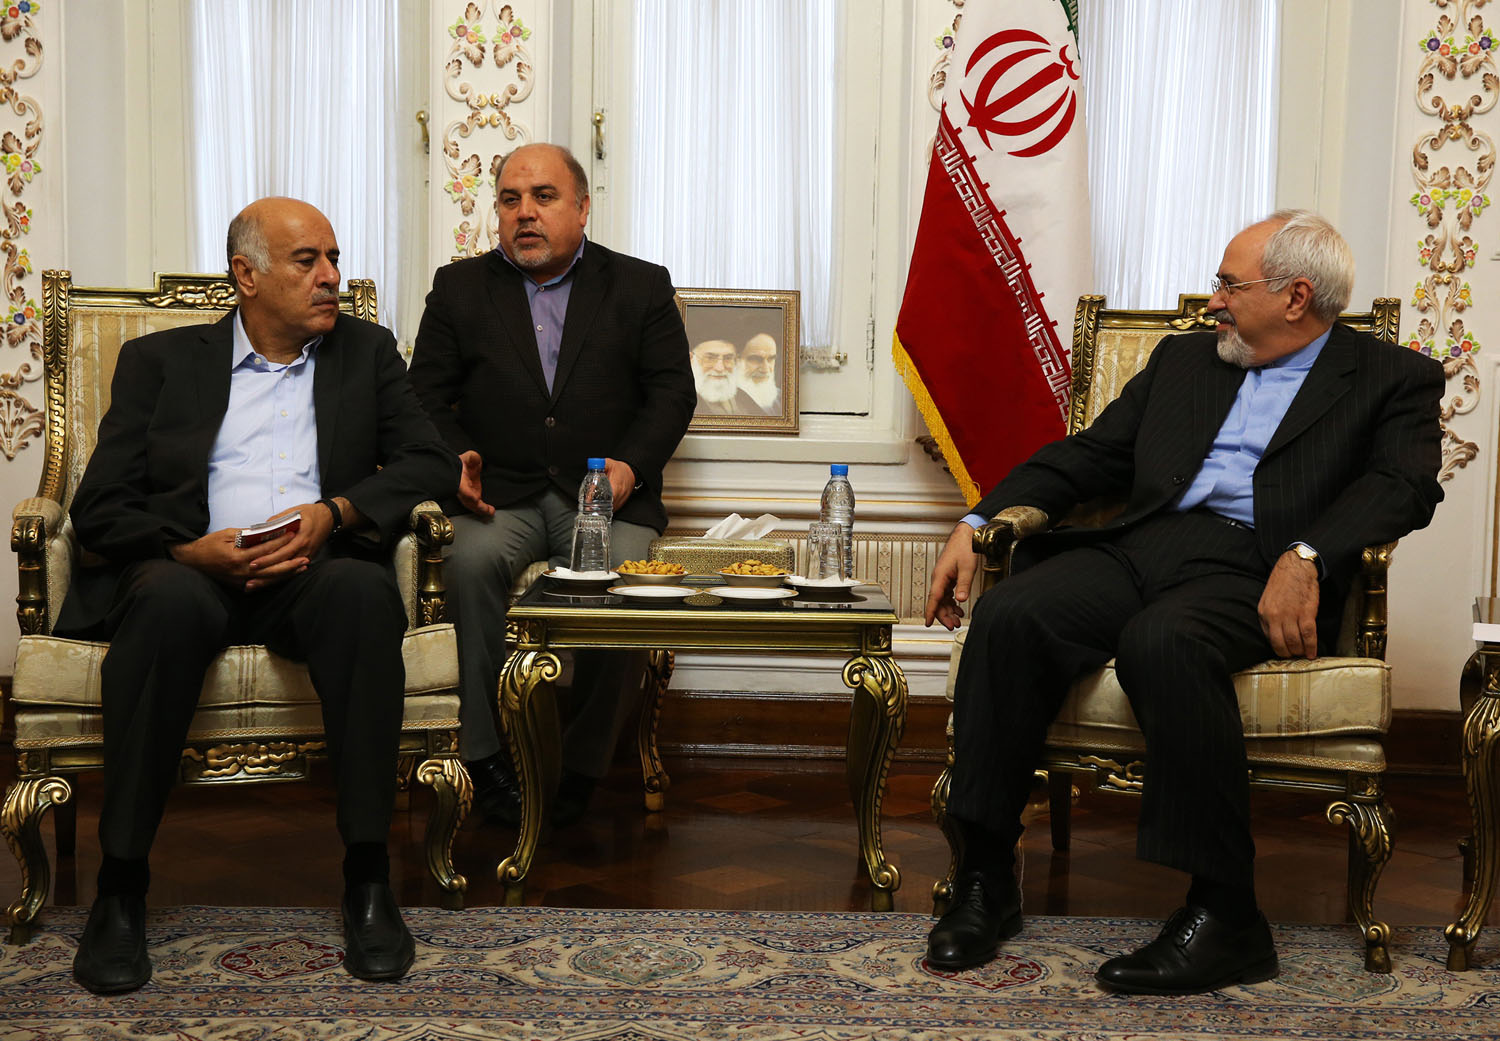 Jibril Rajoub, a senior official in the Palestinian Authority, left, meets with Iranian Foreign Minister Mohammad Javad Zarif in Tehran on Jan. 28, 2014